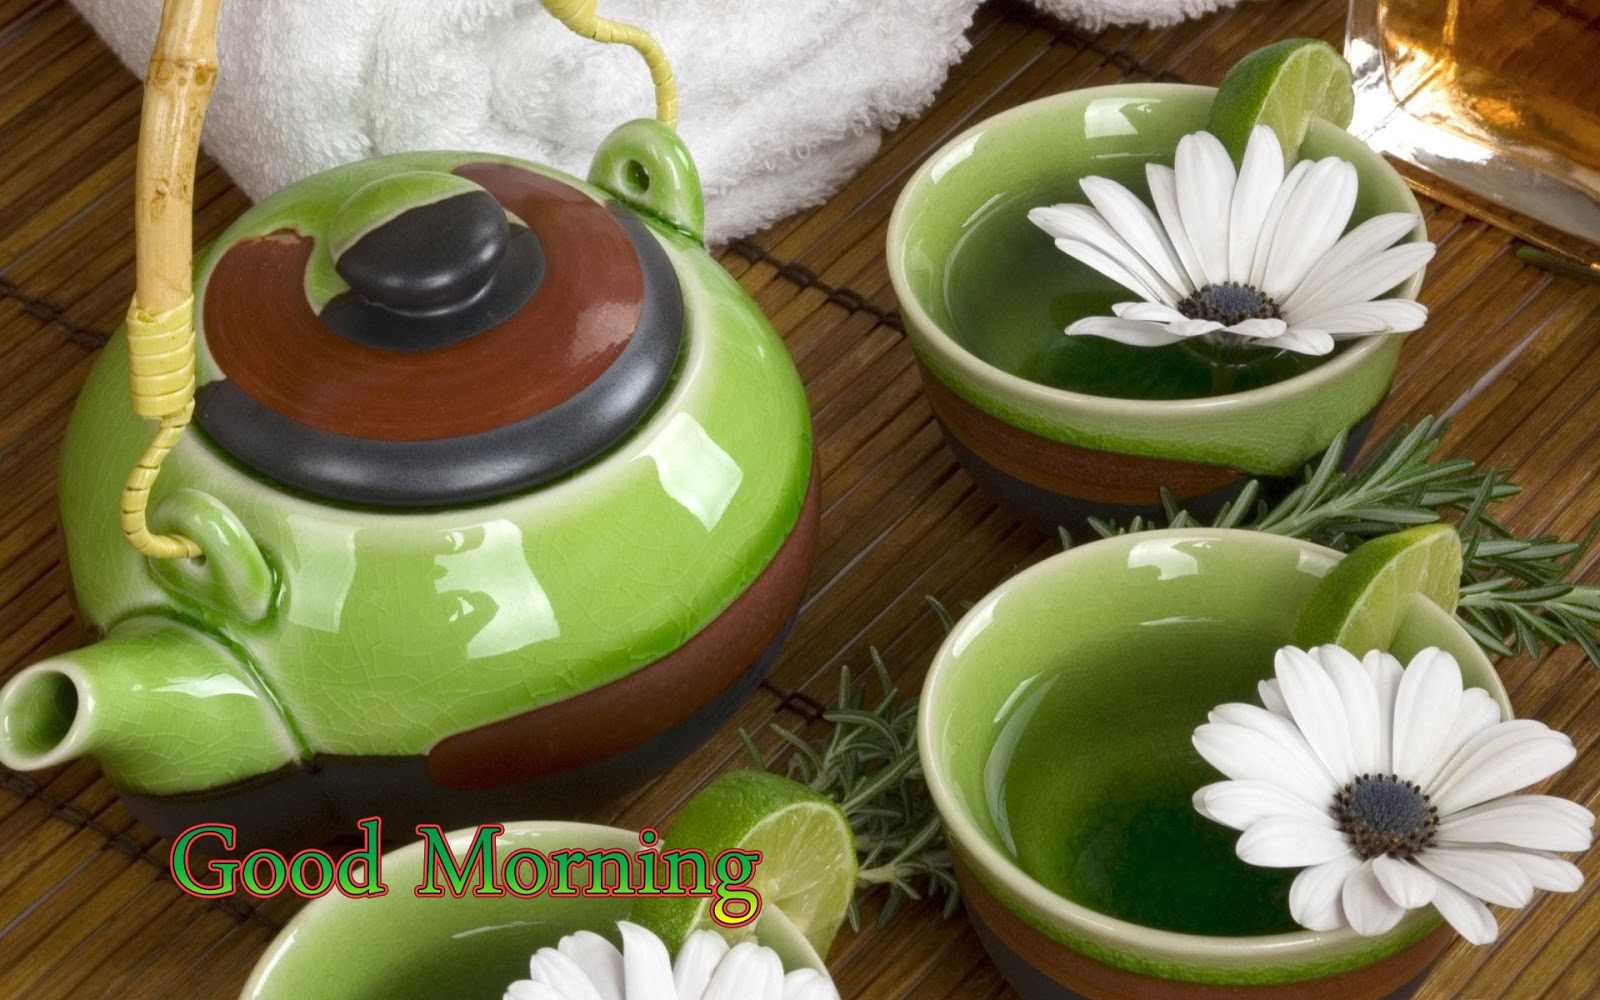 Festival Chaska Amazing Good Morning Hd Wishes With Green Tea